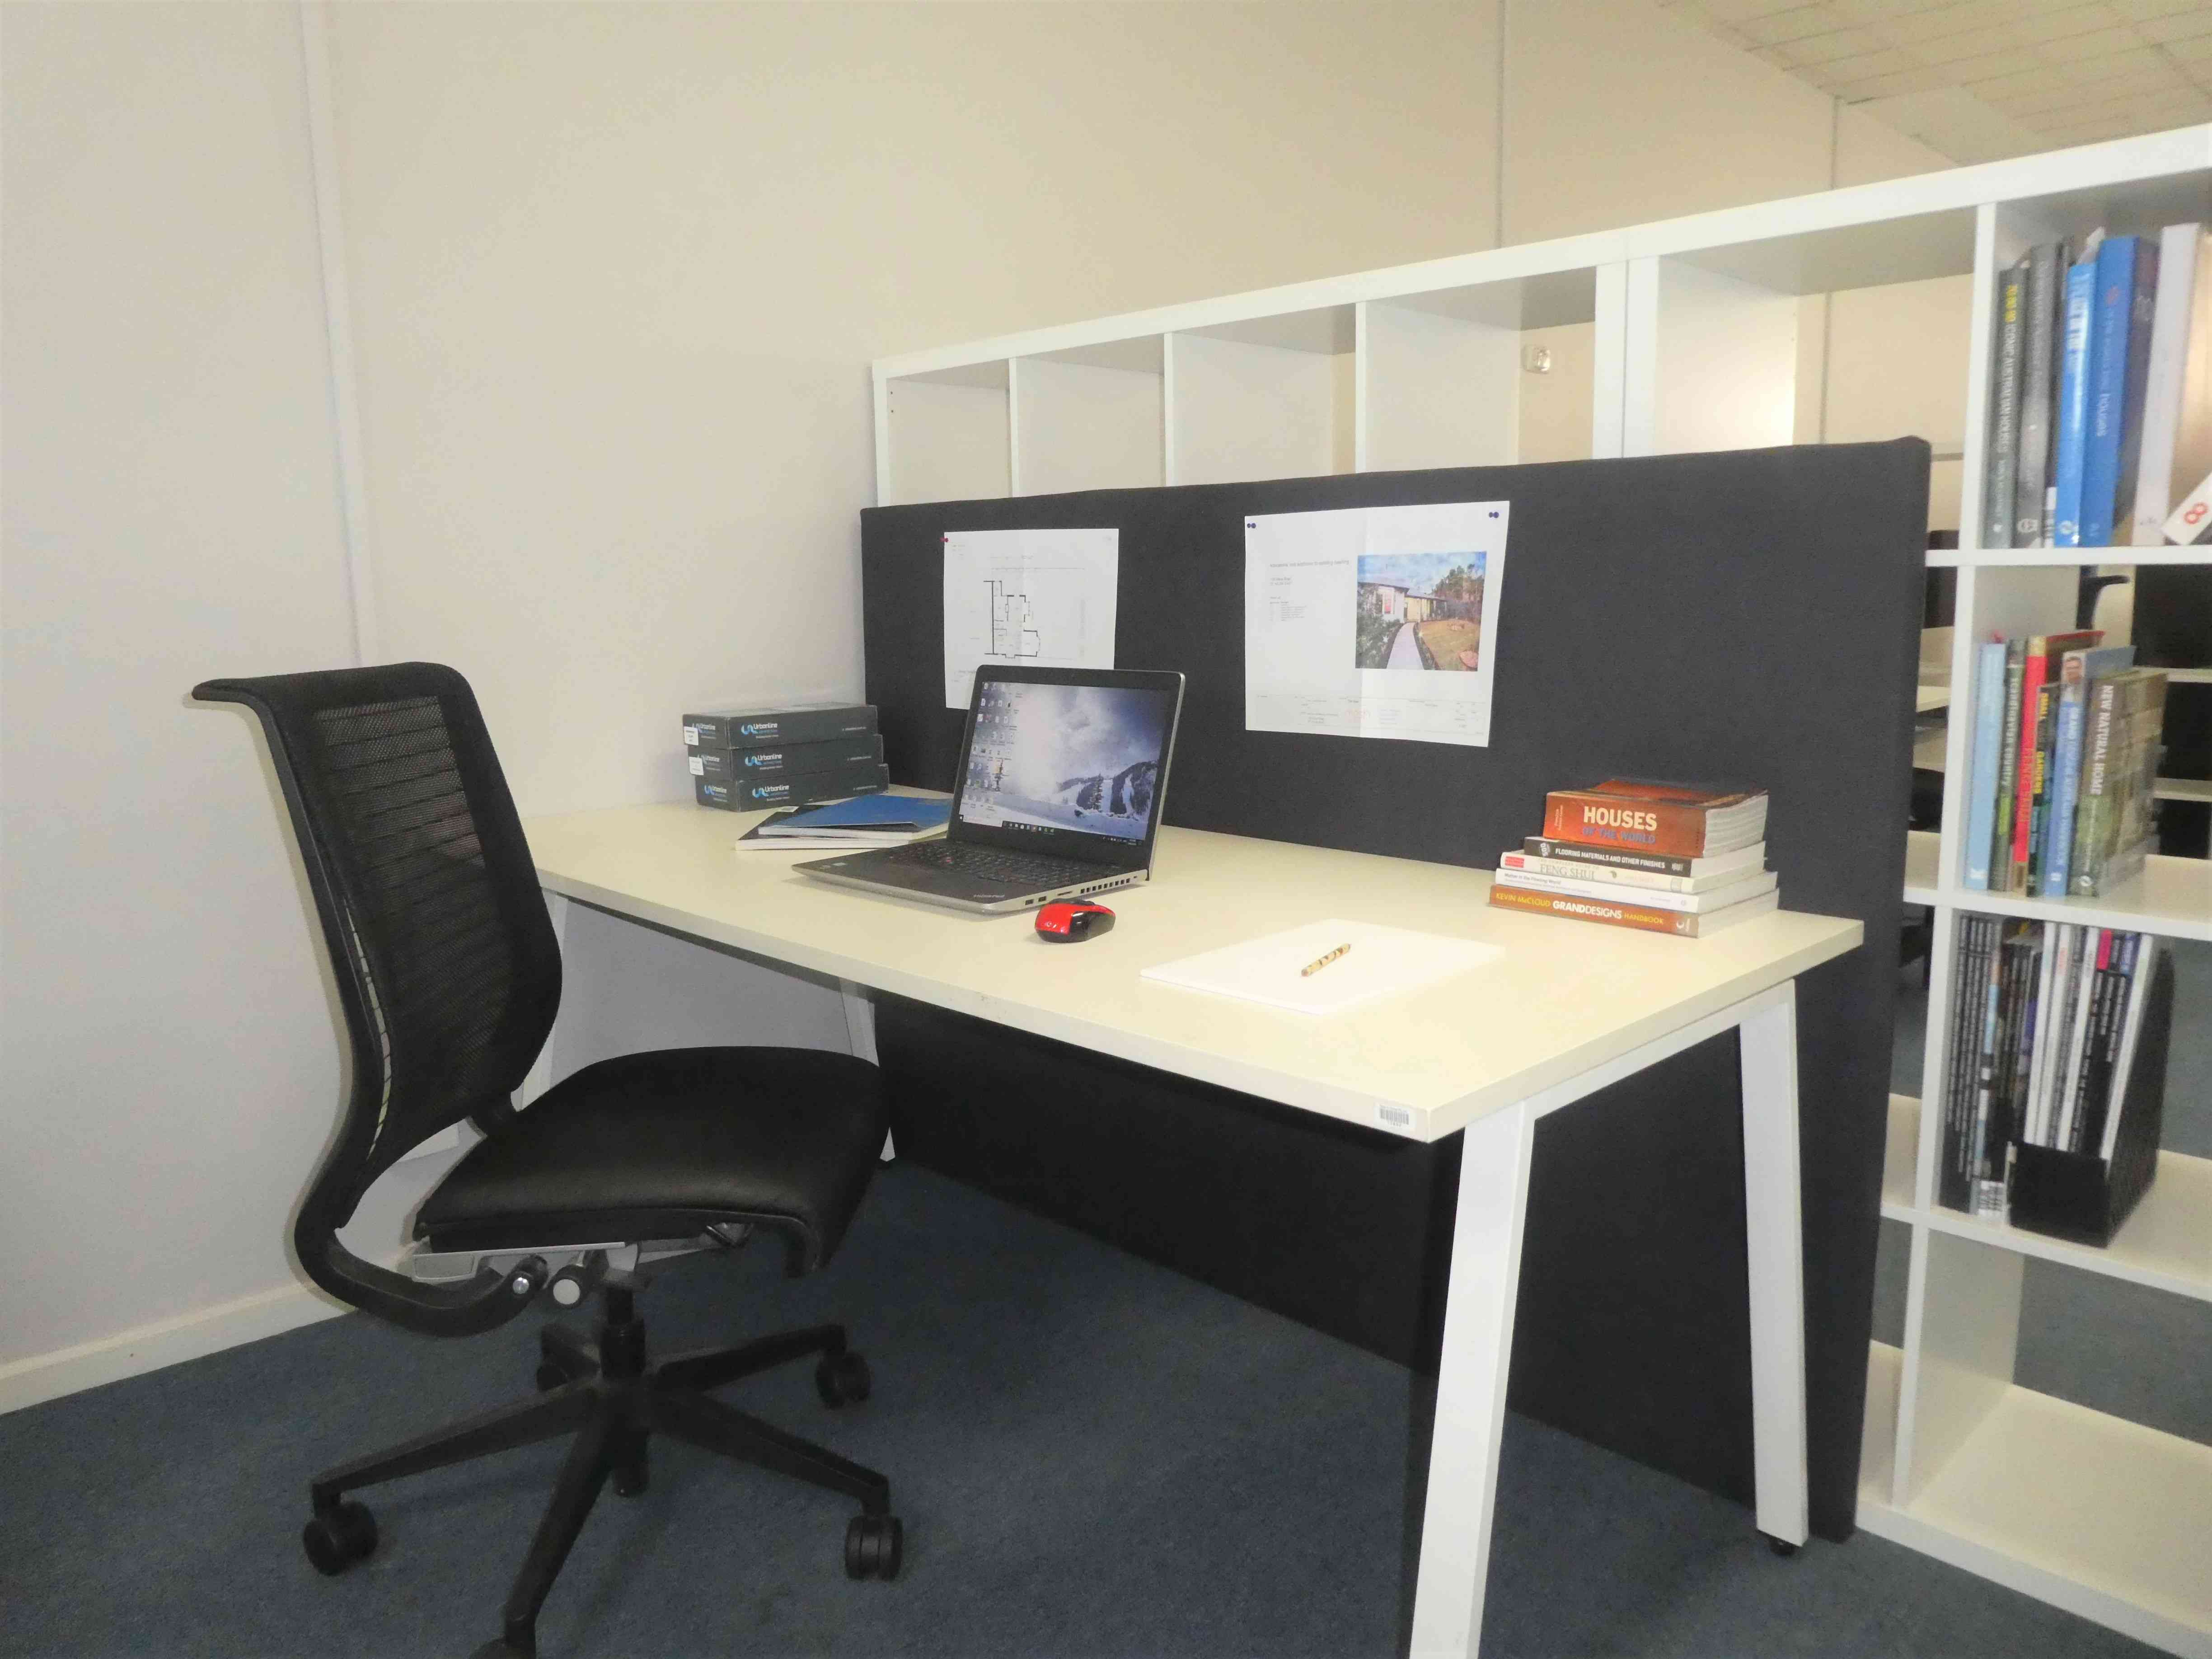 Studio North – Shared Office Space